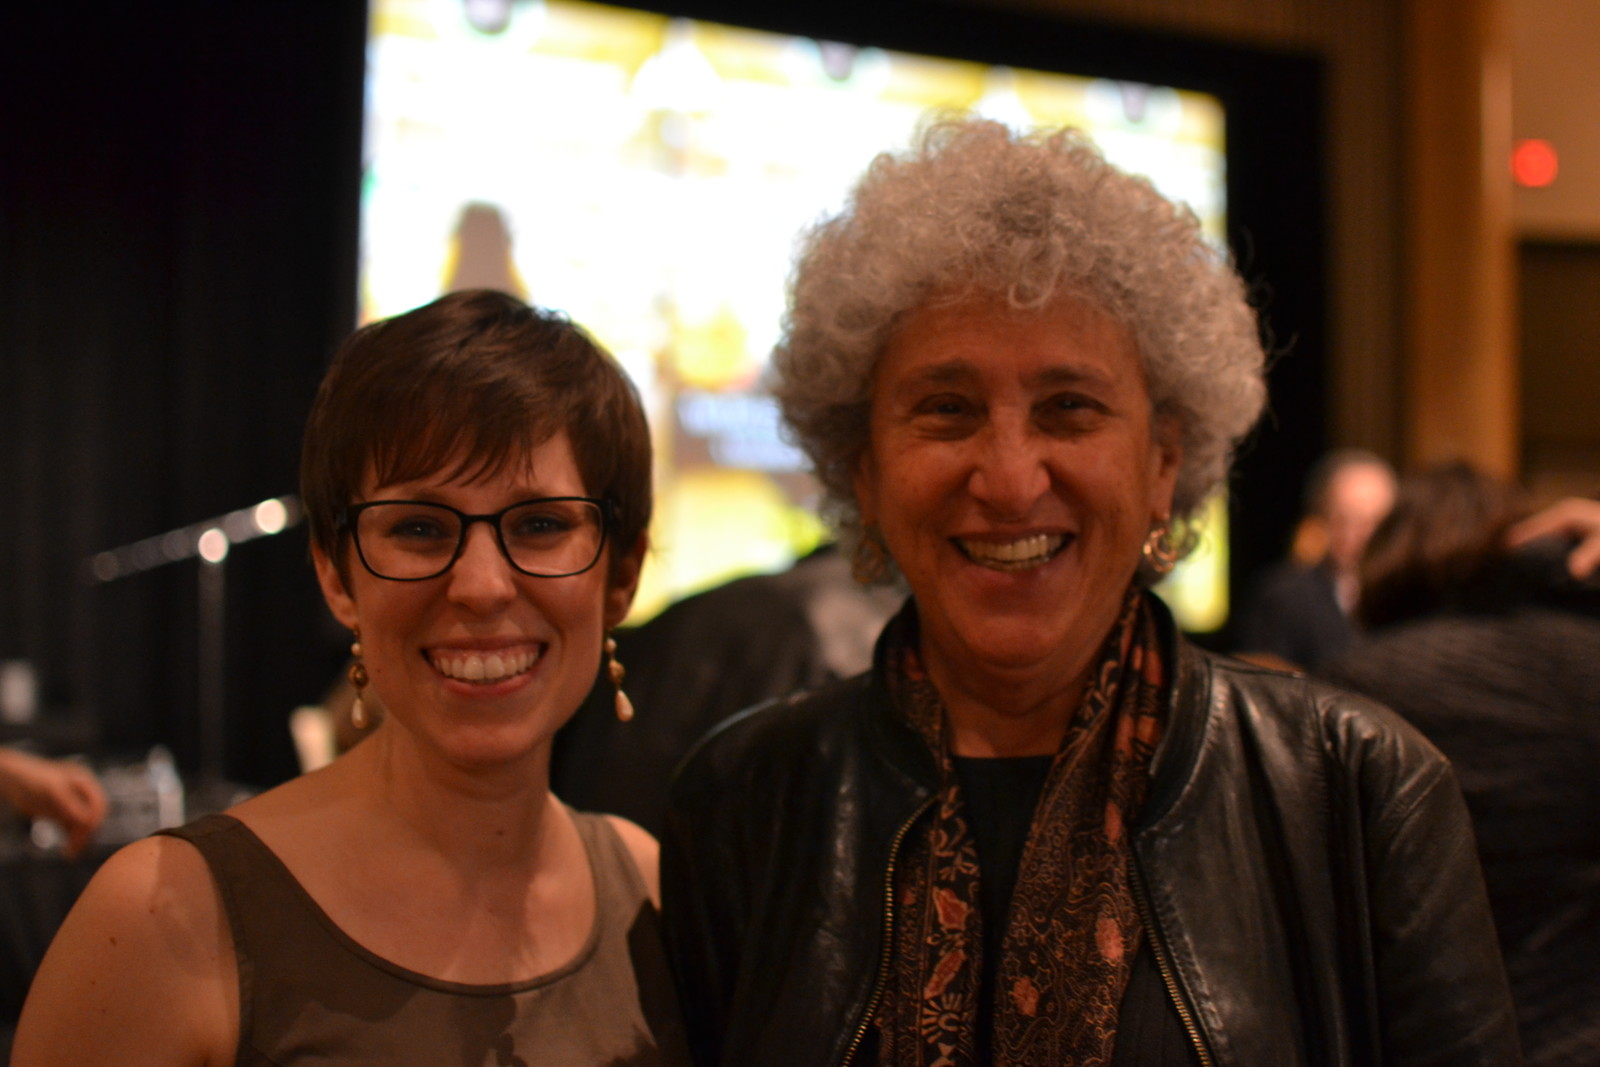 """What an honor to discuss nutrition education with the great Marion Nestle:  professor, amazing author, and expert on food politics. Check out  """"What To Eat"""" if you haven't read it yet!"""